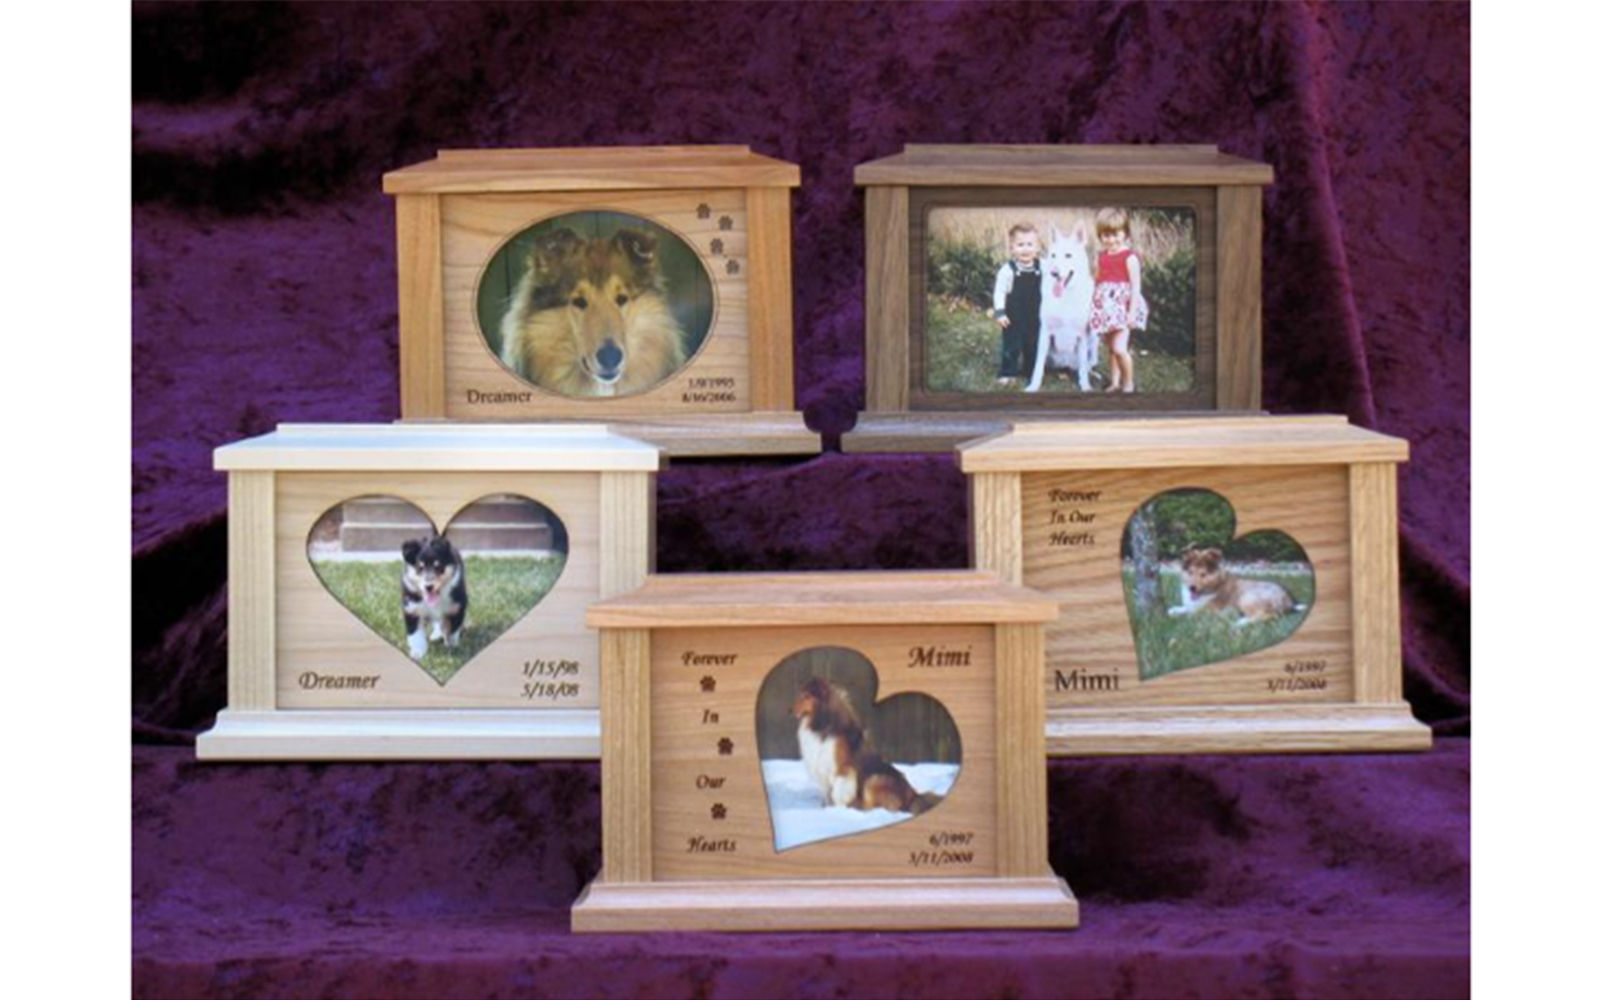 Natural Wood Photo Frame Urns   These picture frame urns are made out of solid north American hardwoods. They are available in walnut, cherry, maple, or oak. These urns do not come stained, but have a clear wood finish to show their natural beauty. The face frames of these urns slide to the side and pop out allowing you to place the photo of your beloved pet behind the glass also covering the screws and the cover plate which cover the remains of your pet.  Standard urn comes with a squared frame without laser engraving. Or you can select a heart, slanted heart, or an oval frame for your urn with laser engraving up to 3 corners as shown in the pictures for an additional $25  These urns come in Small (30 Cubic Inches), Medium (70 Cubic Inches), and Large (120 Cubic Inches) sizes.  Prices range from $95 to $145  depending upon the size and wood type you select.